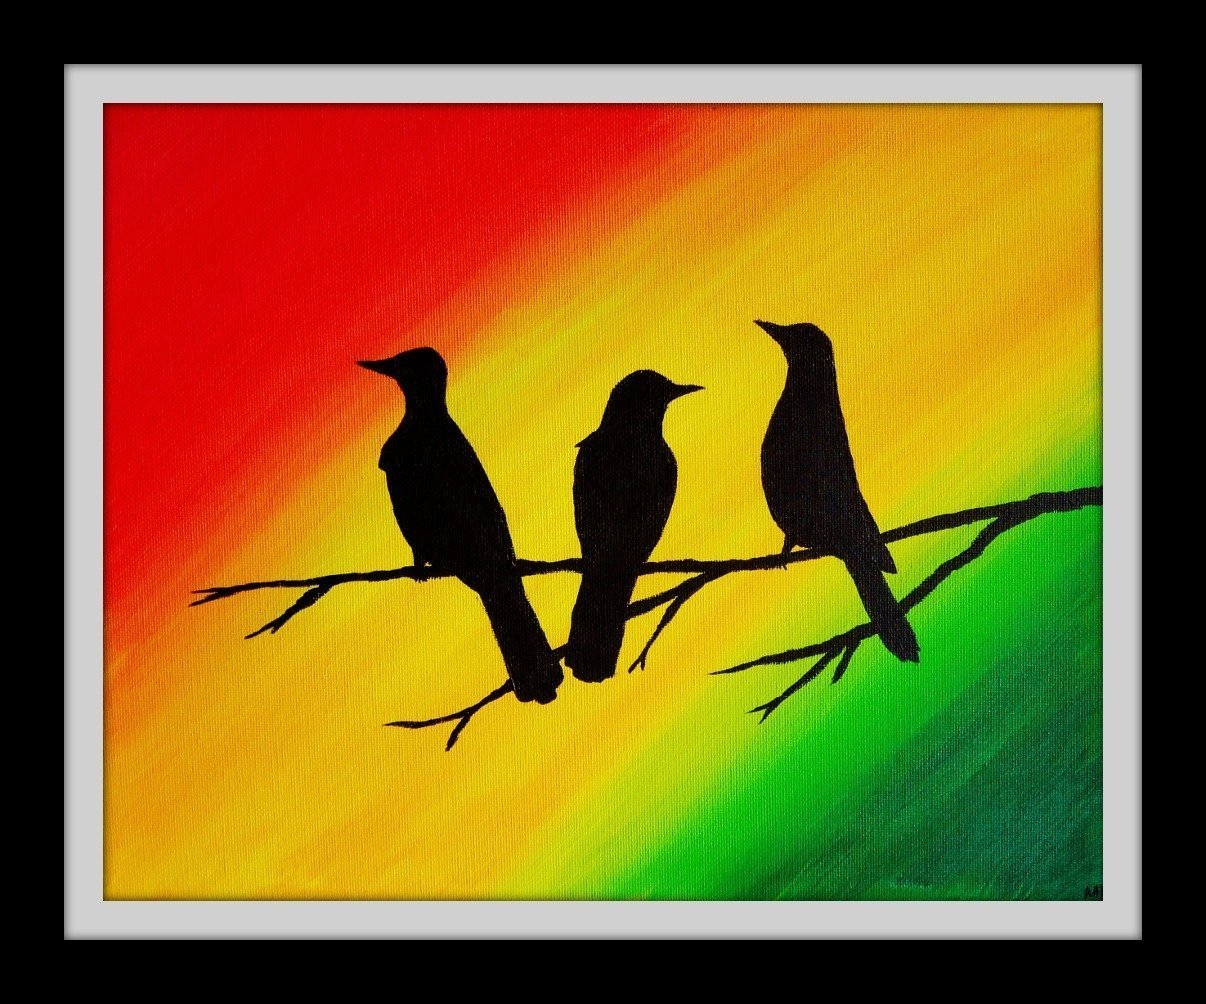 Amazon.com: Three Little Birds Wall Art Rasta Decor 8x10 Inch Art ...